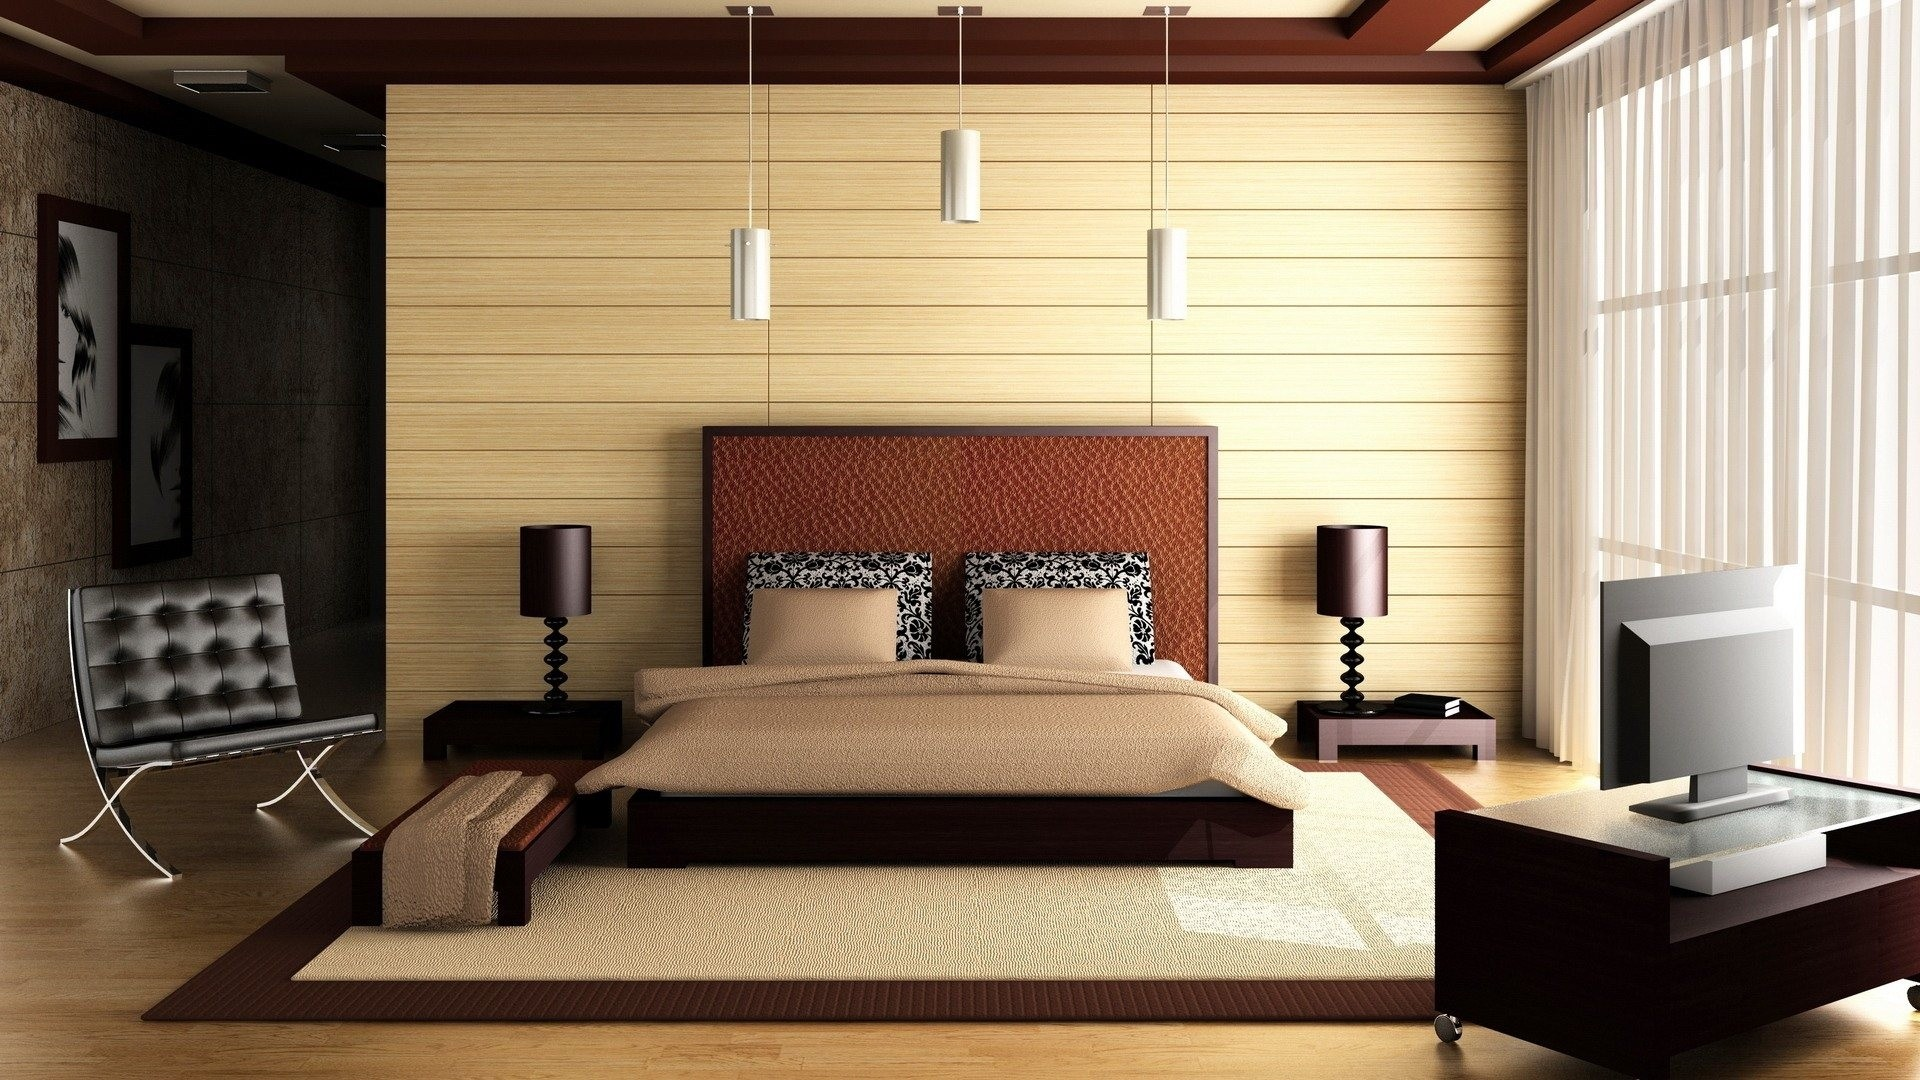 Ordinaire Superb Bedroom Interior Design Wallpapers